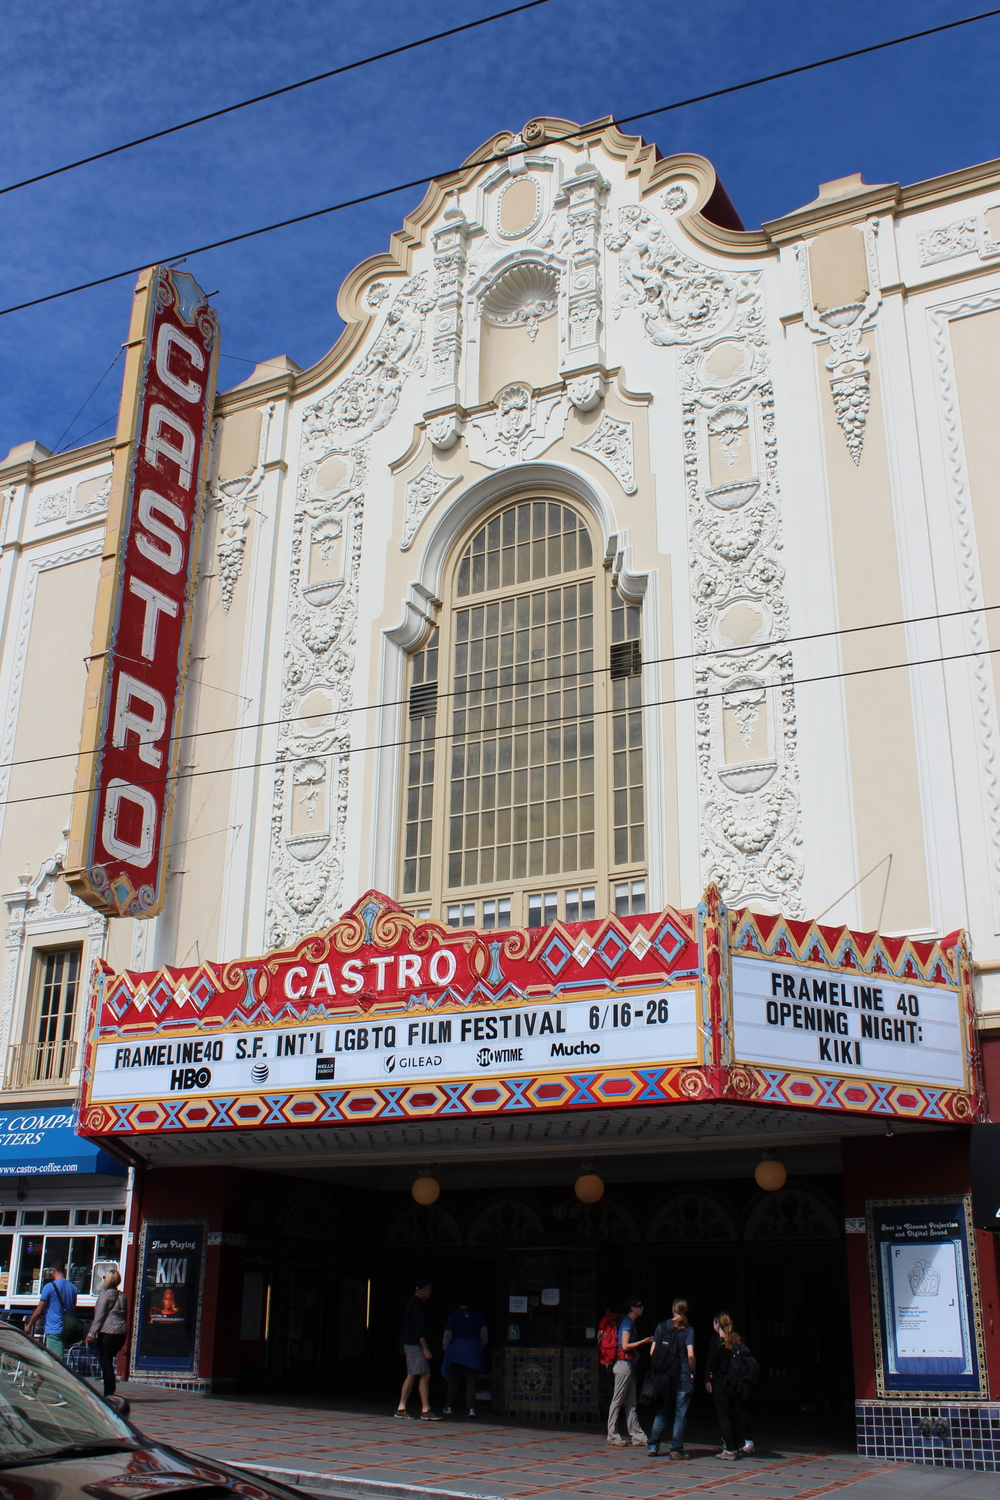 Frameline40 at the historic Castro Theater